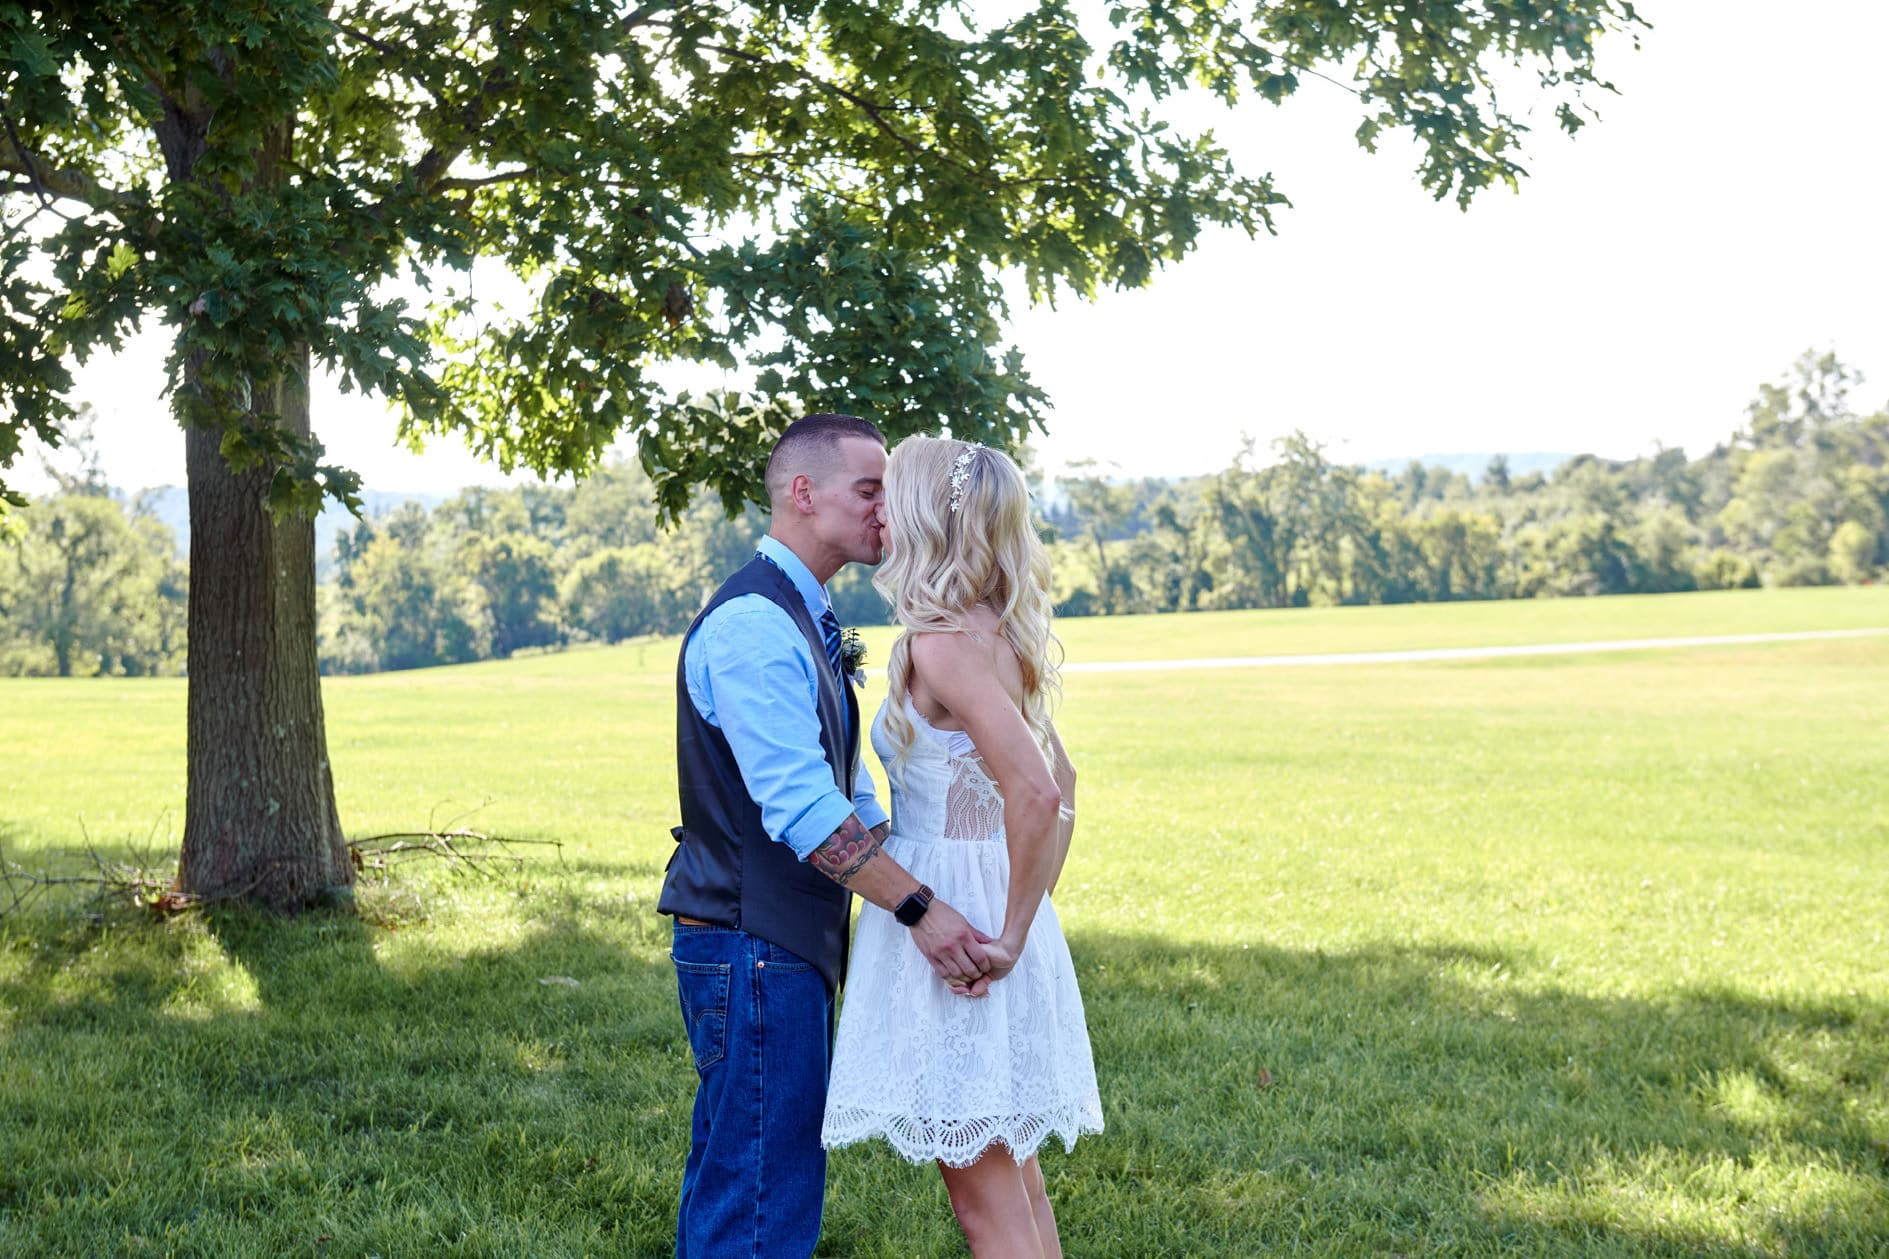 first kiss photo after eloping